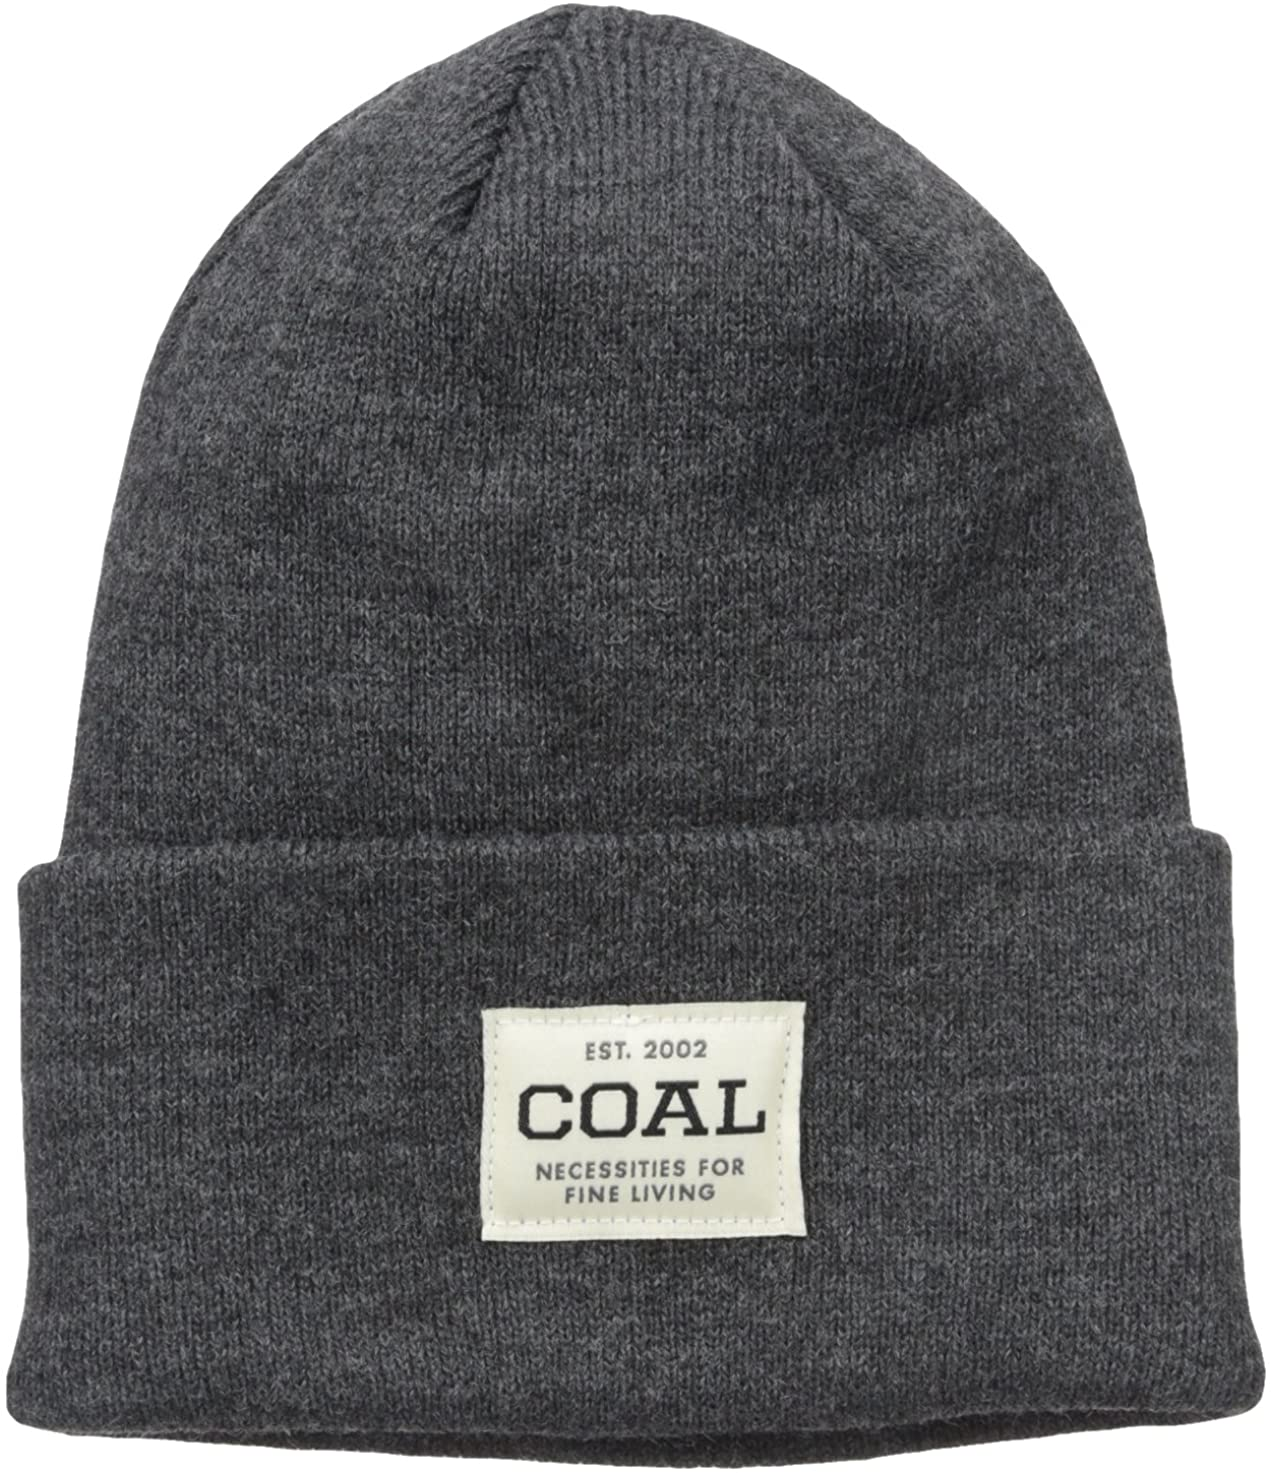 Coal Mens The Uniform Fine Knit Workwear Cuffed Beanie Hat